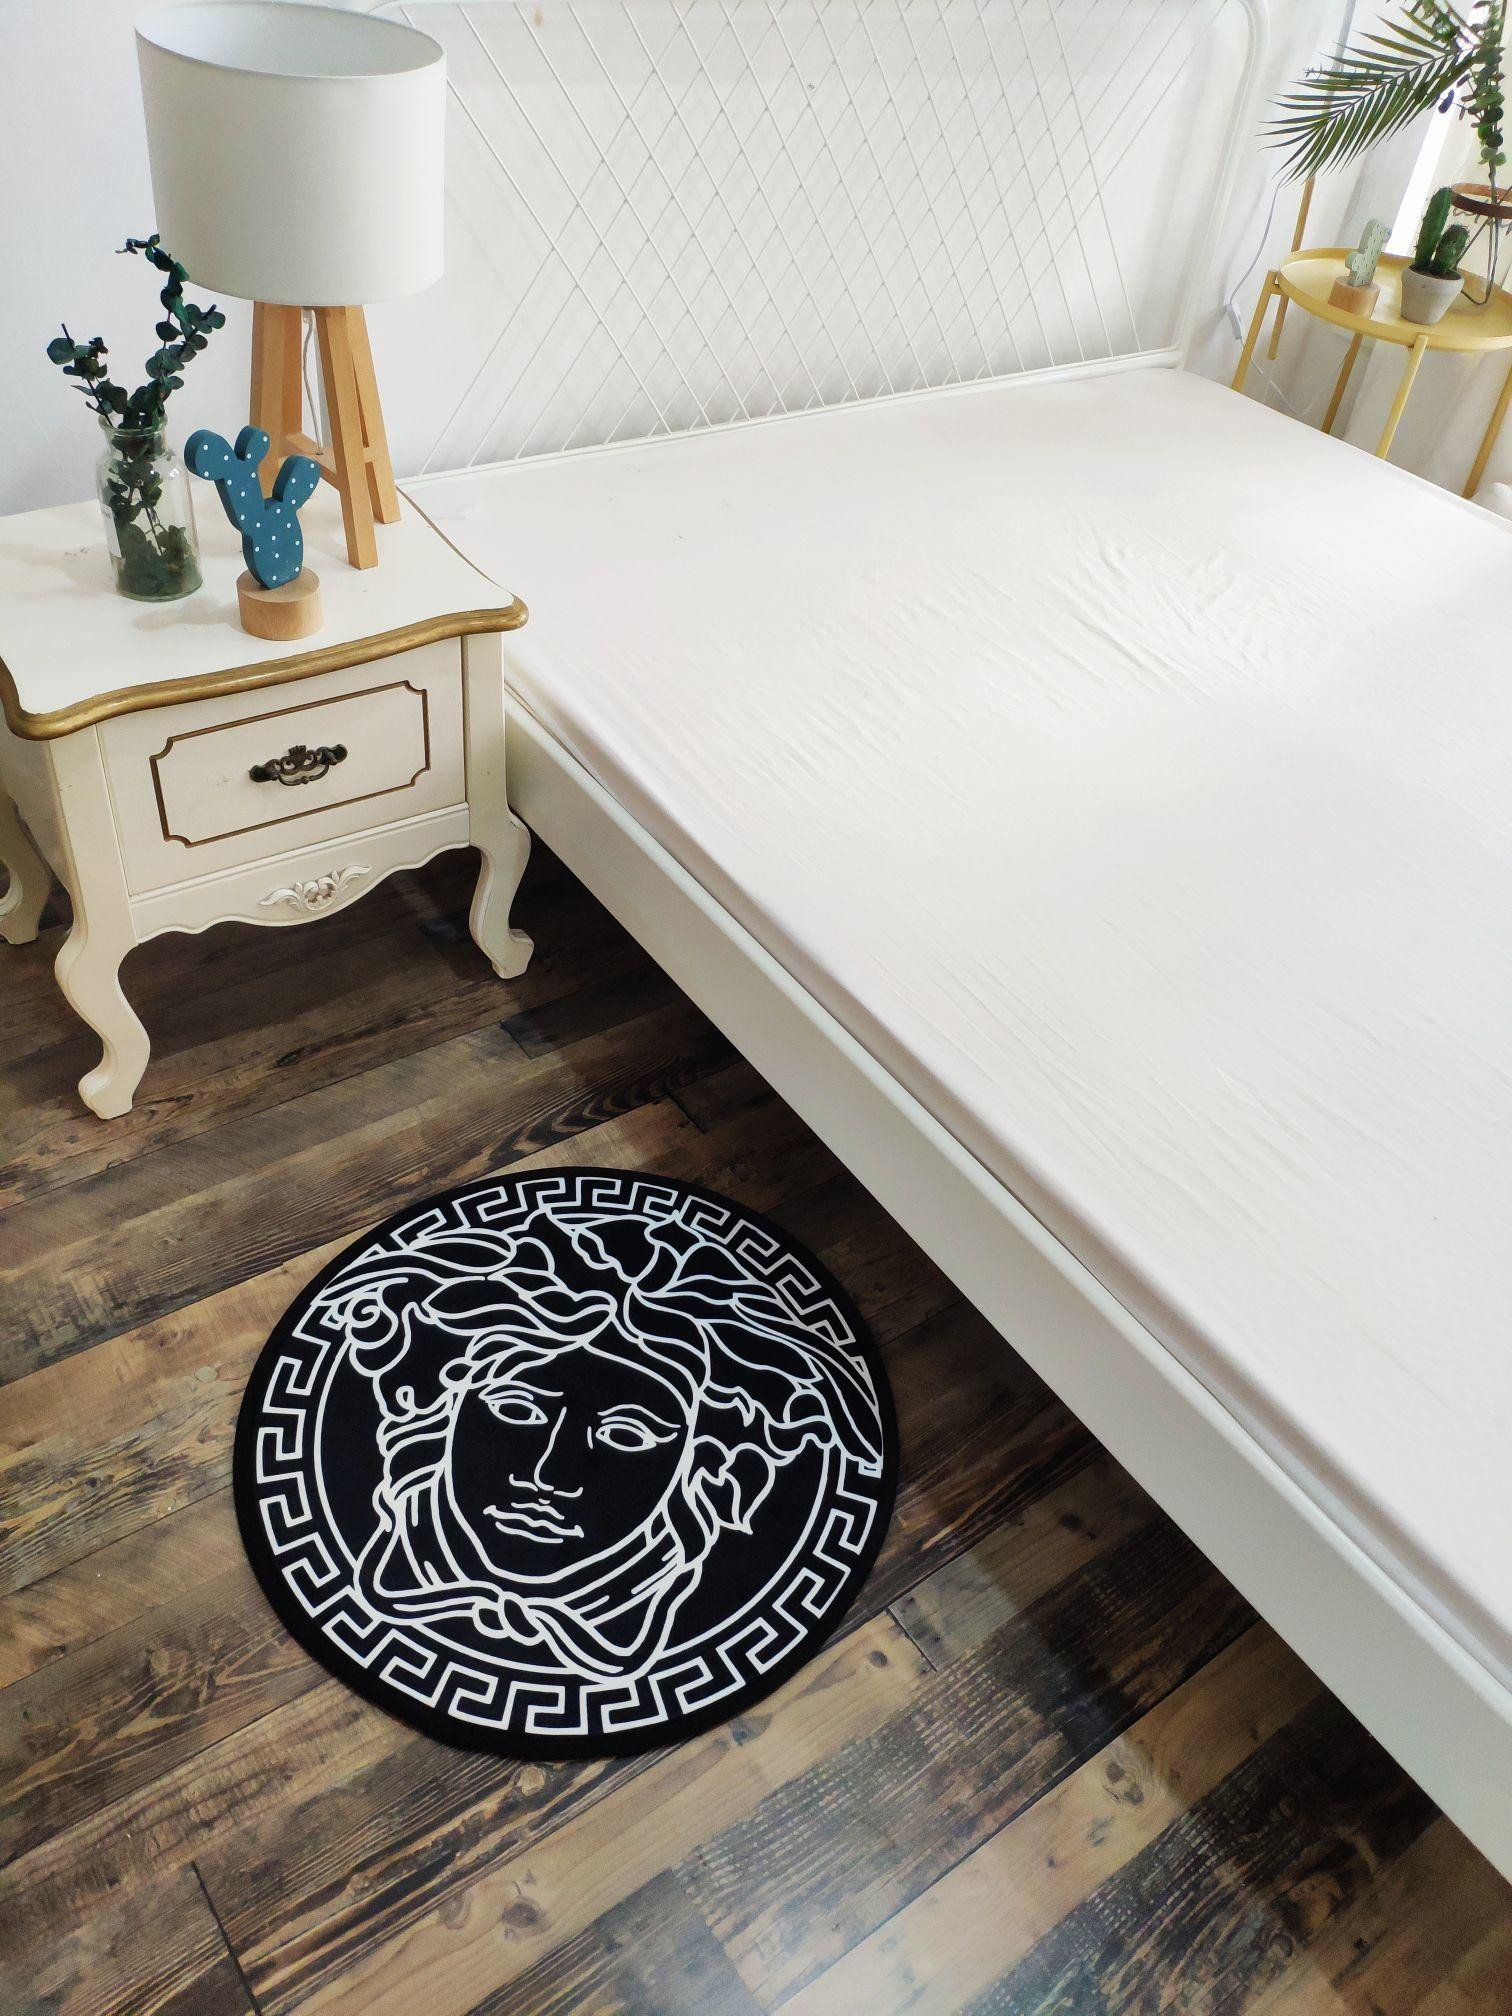 Cute Rugs for Bedroom Awesome Luxury Home Decoration Brand Design Bedroom Living Room Coffee Mats Carpet Floor Bathroom Door Bath Mat Slide Proof Rug Mats Carpet Home Decor Unique